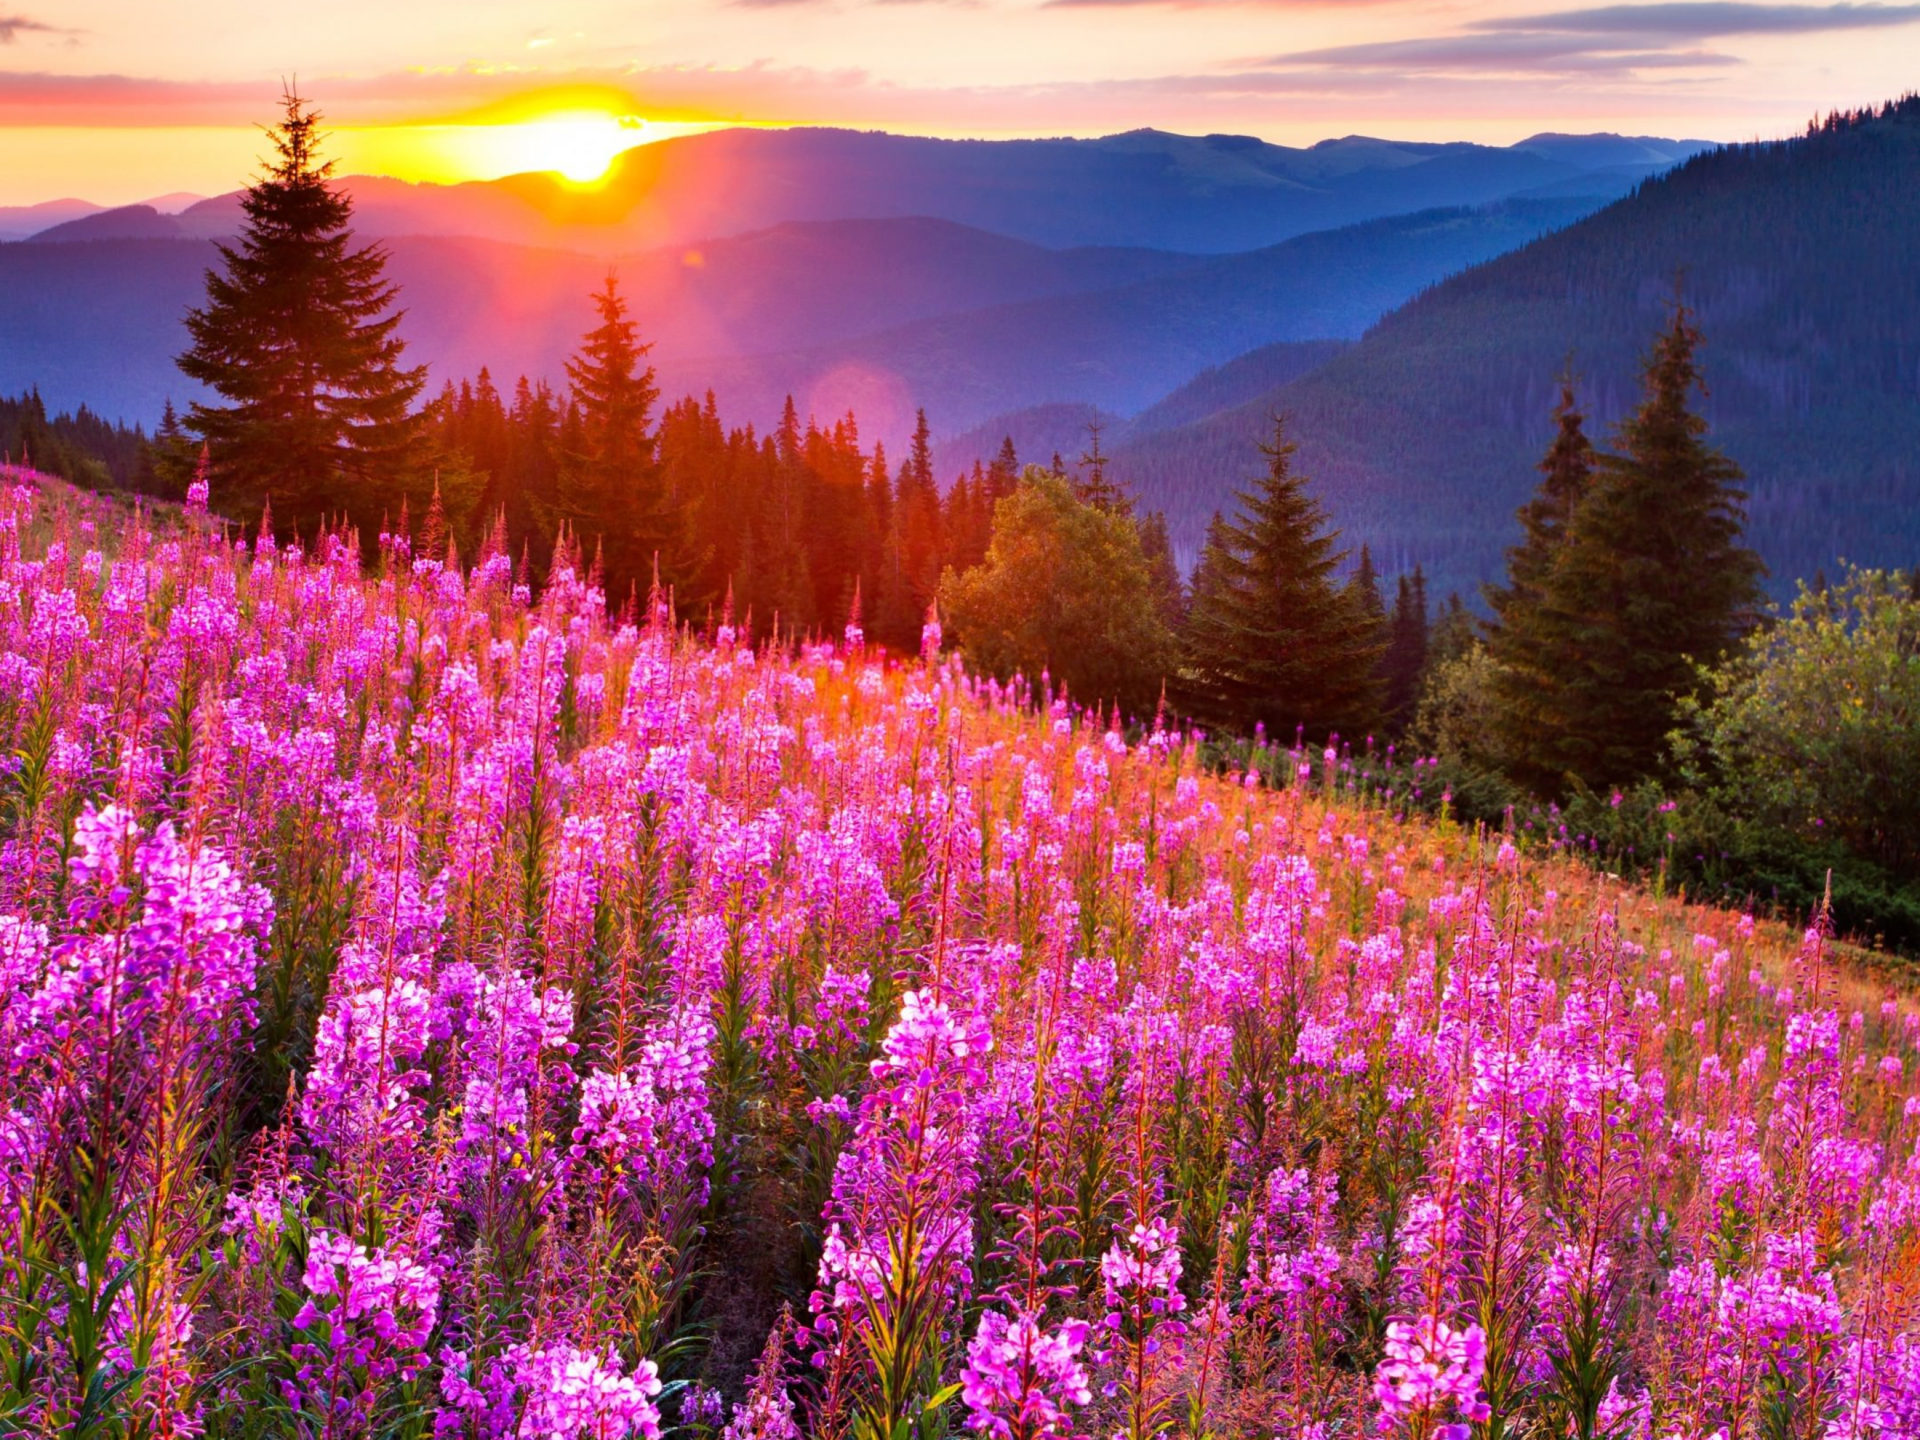 Beautiful Cars Wallpapers Free Download Sunsets Mountain Mow Lupine Pink Flowers Summer Landscape